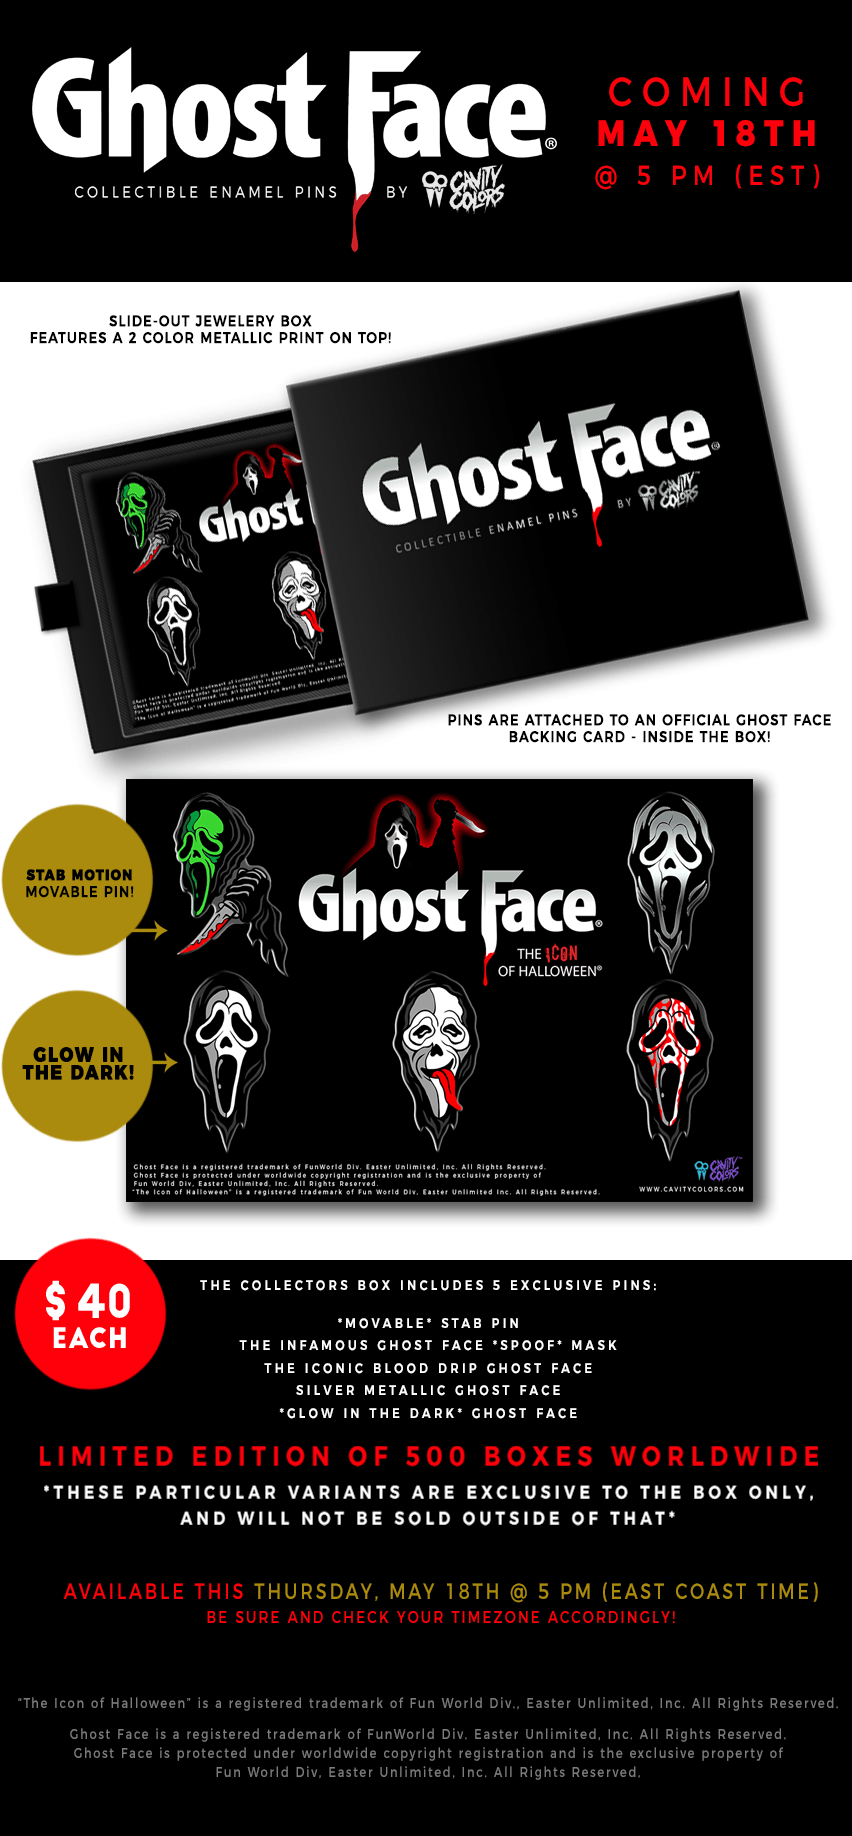 GhostFace Enamel Pins by Cavity Colors